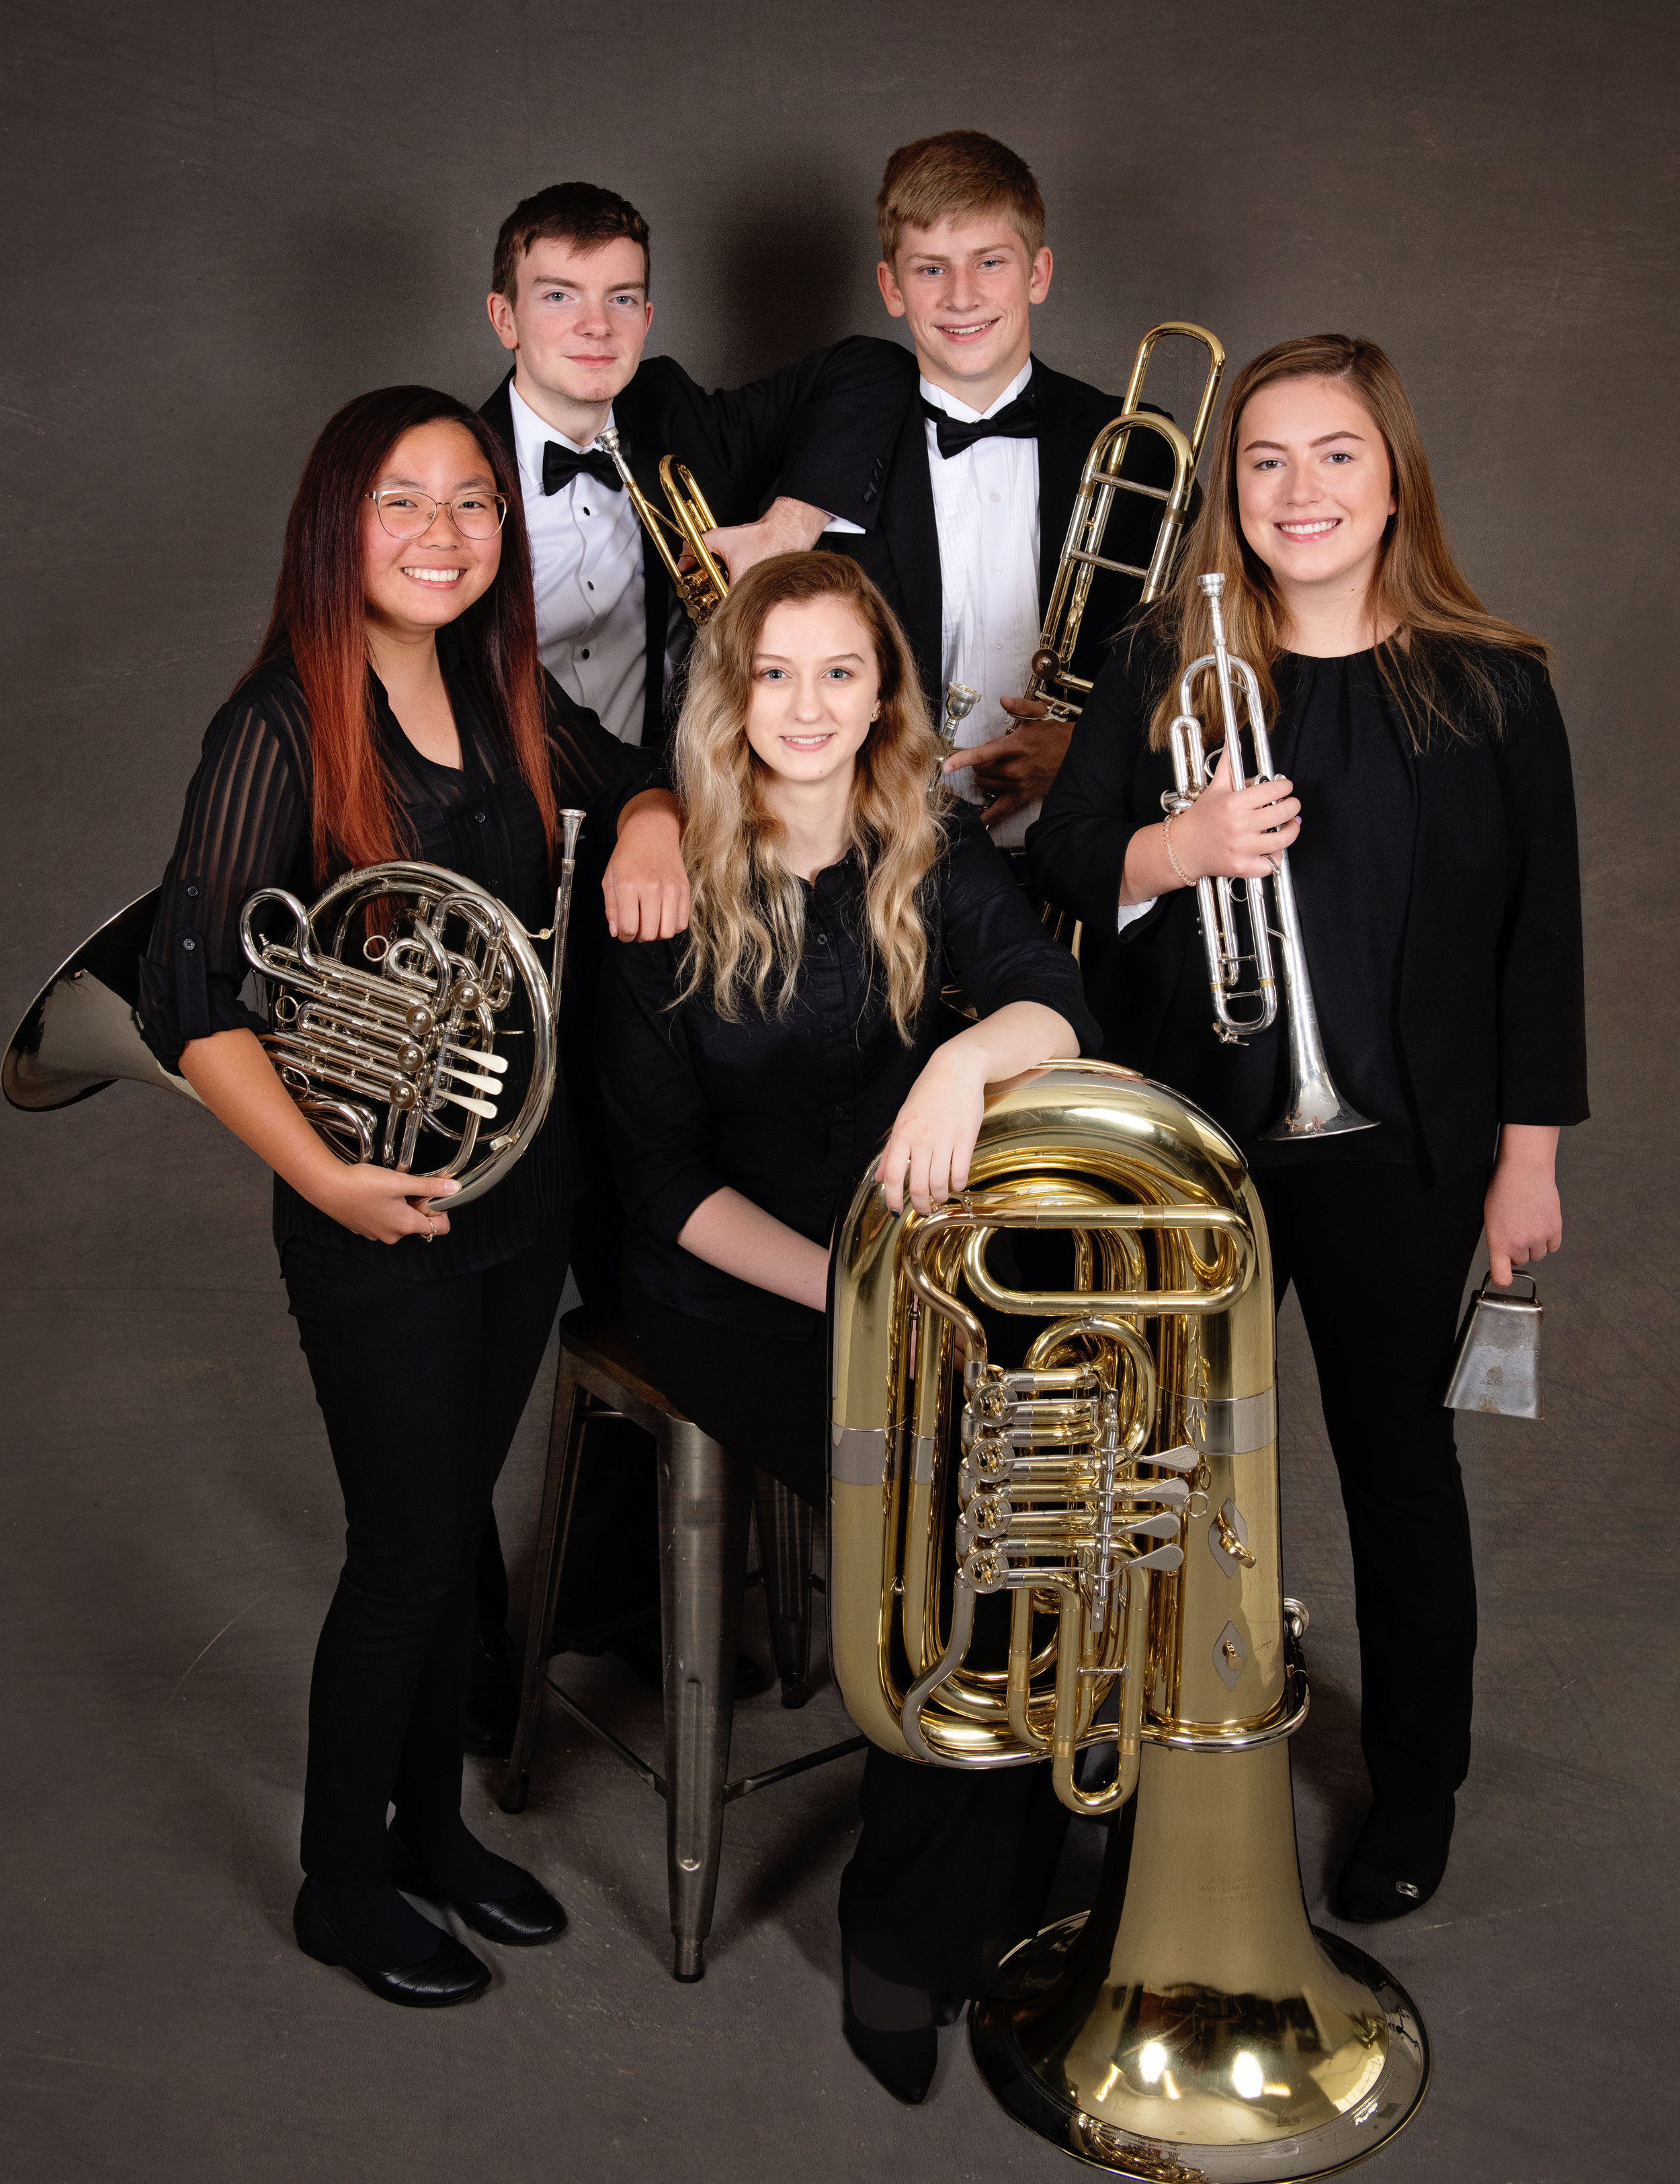 1:45- 2:15 Elgin Youth Symphony Orchestra's Sterling Brass Band